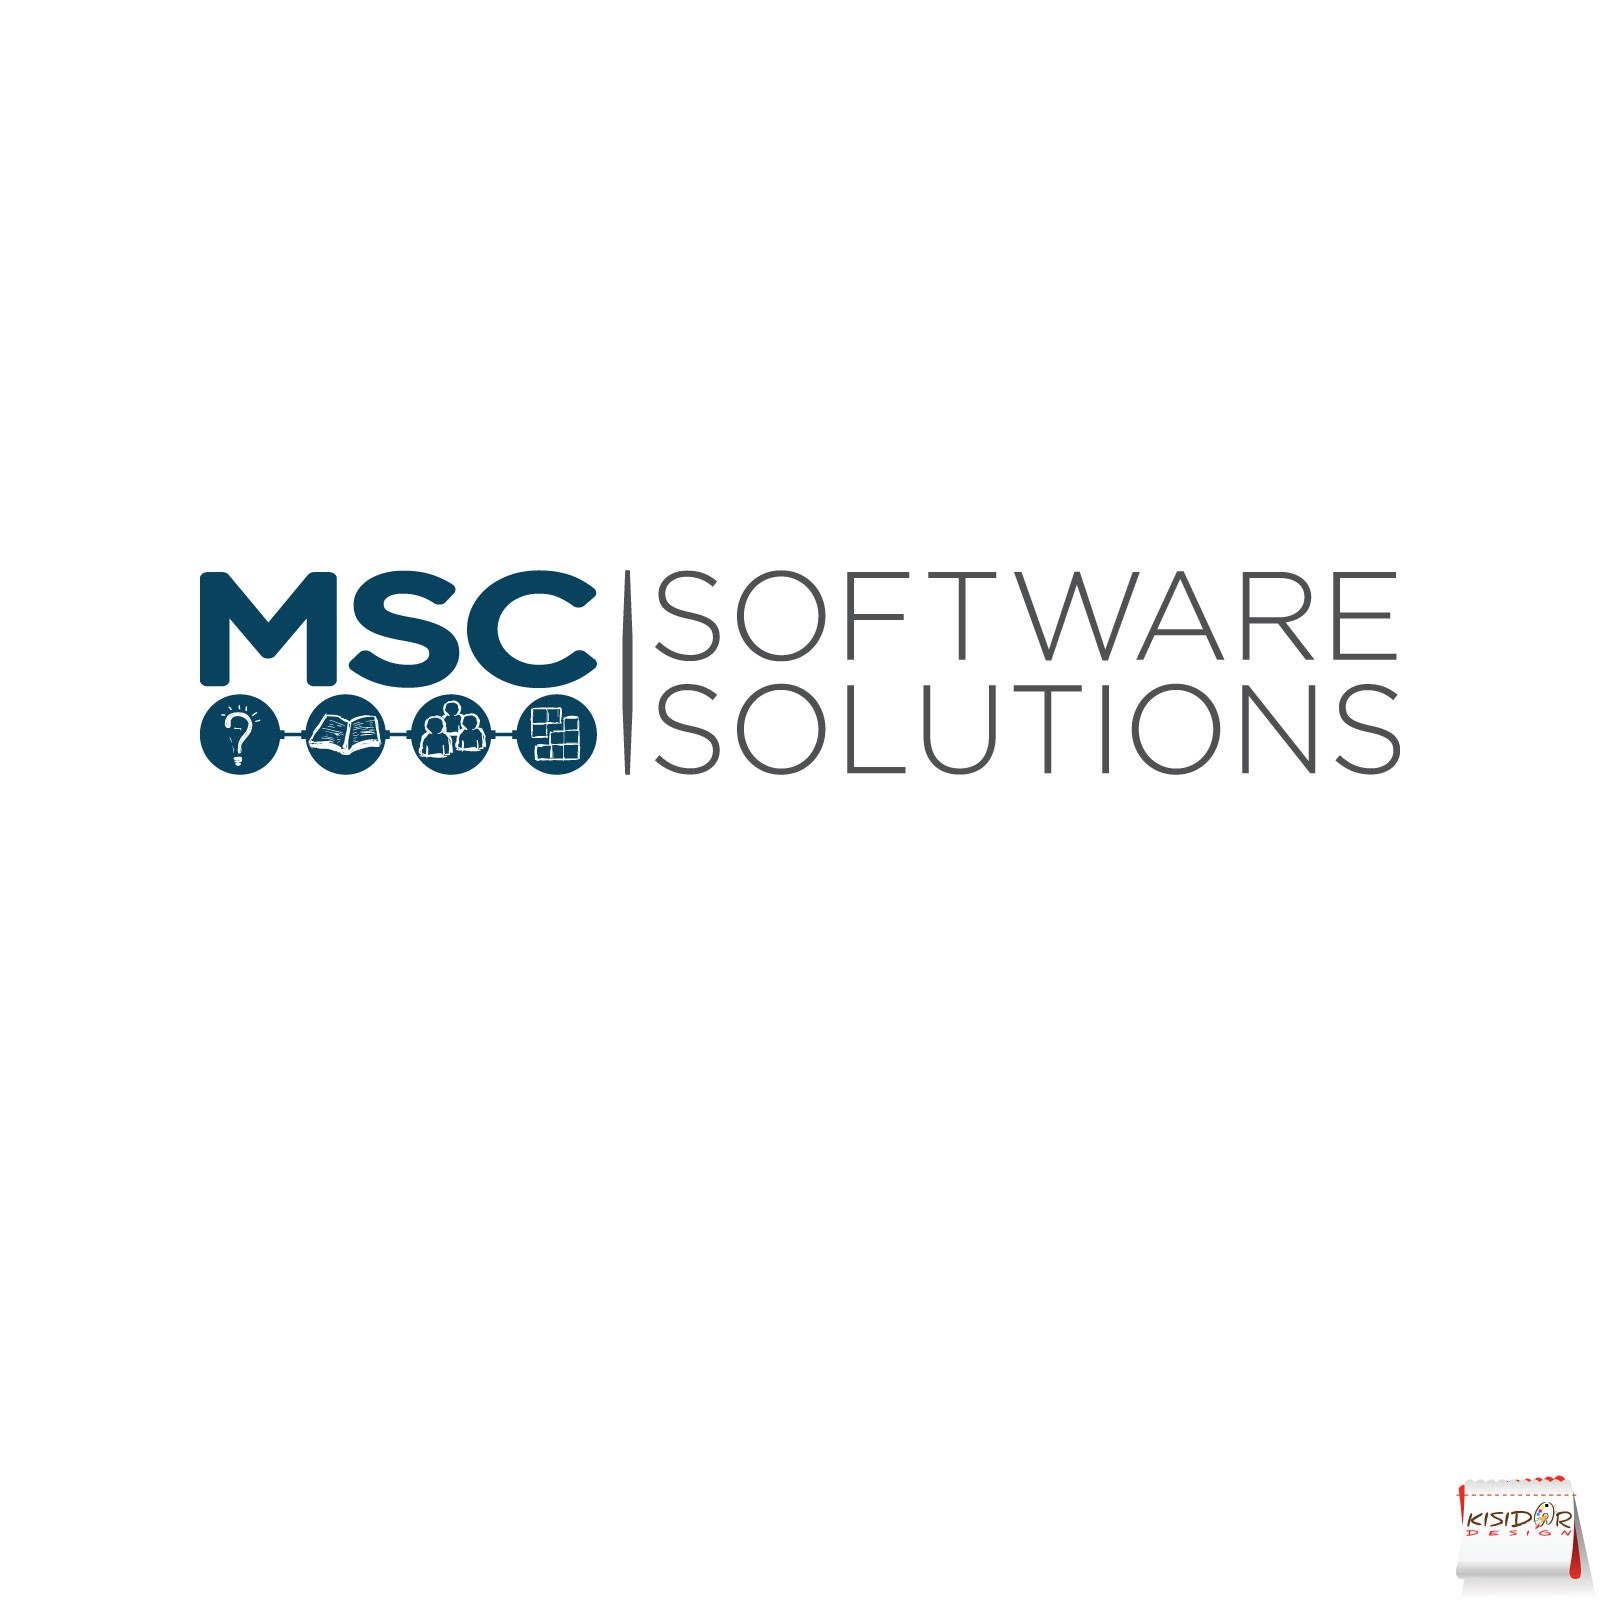 Create a clean, smart logo for MSC Software Solutions